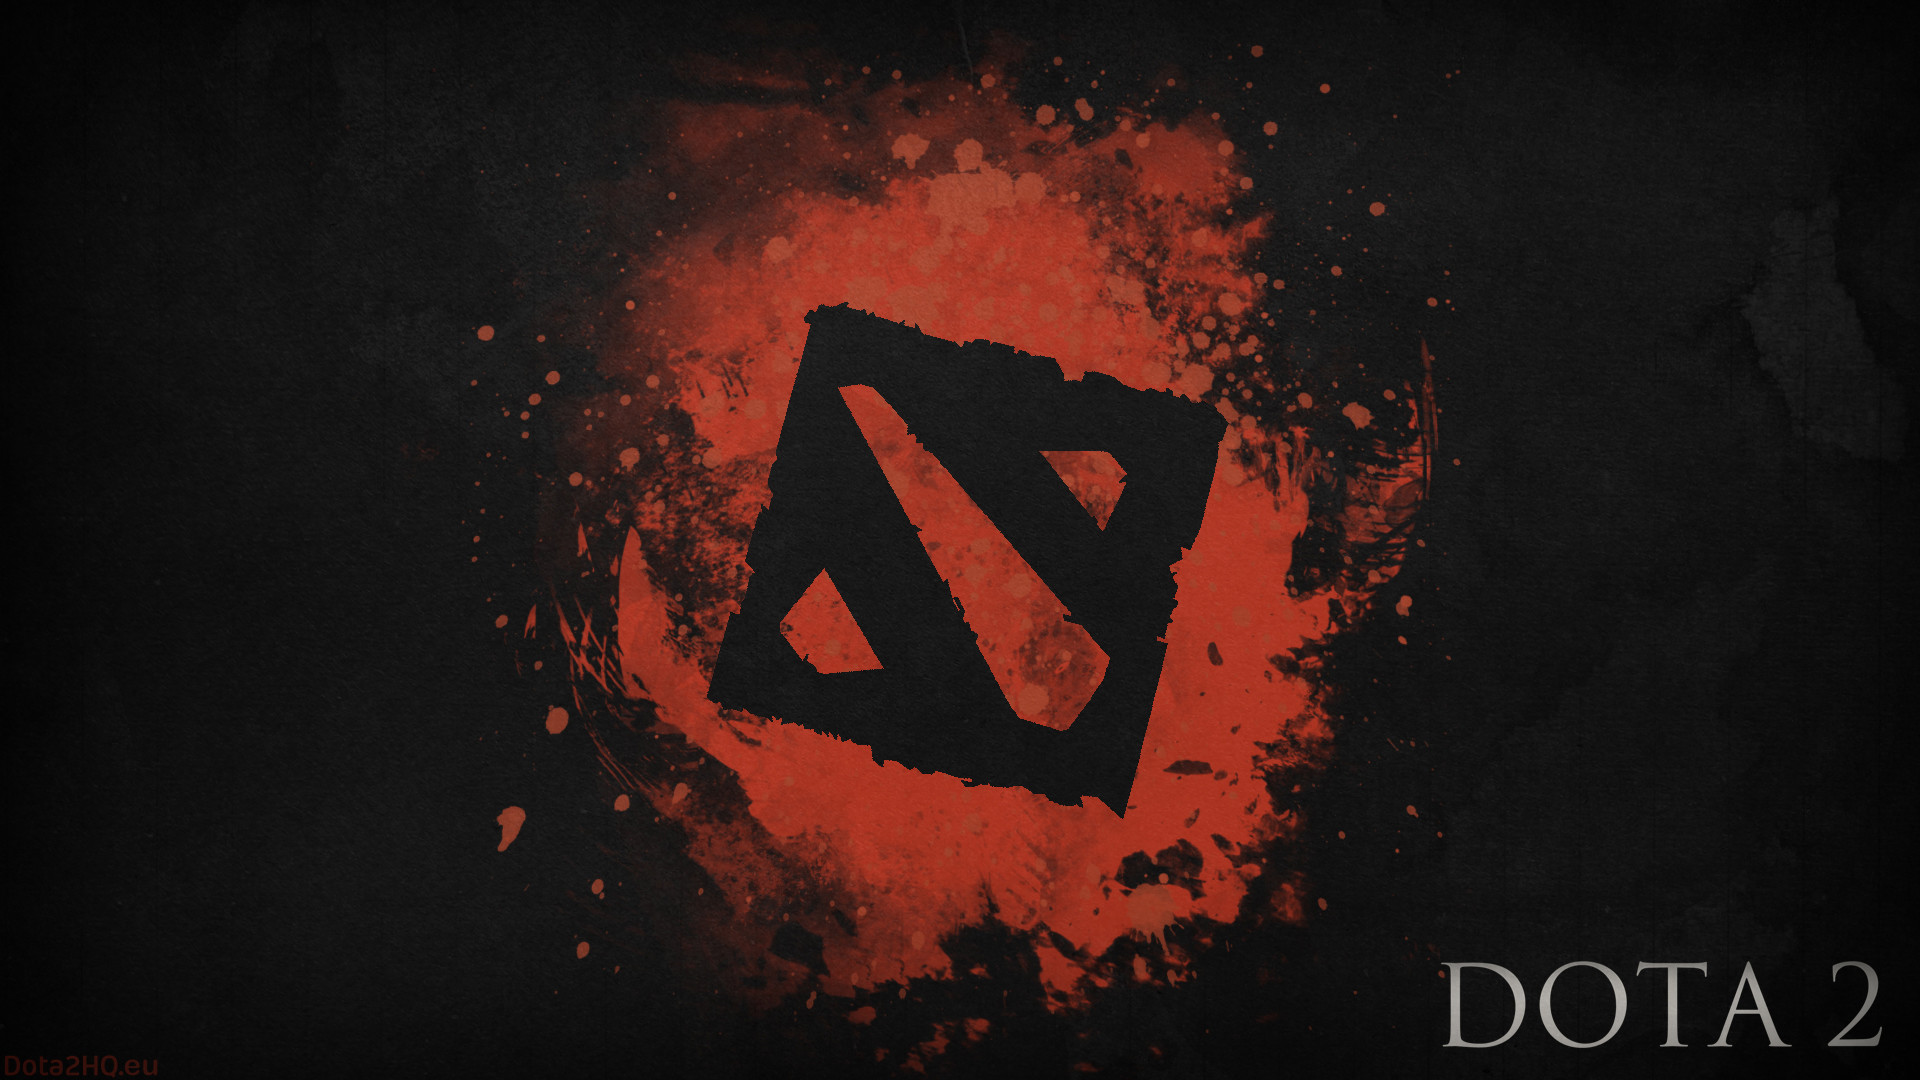 1920x1080 Preview wallpaper dota 2, black logo, art